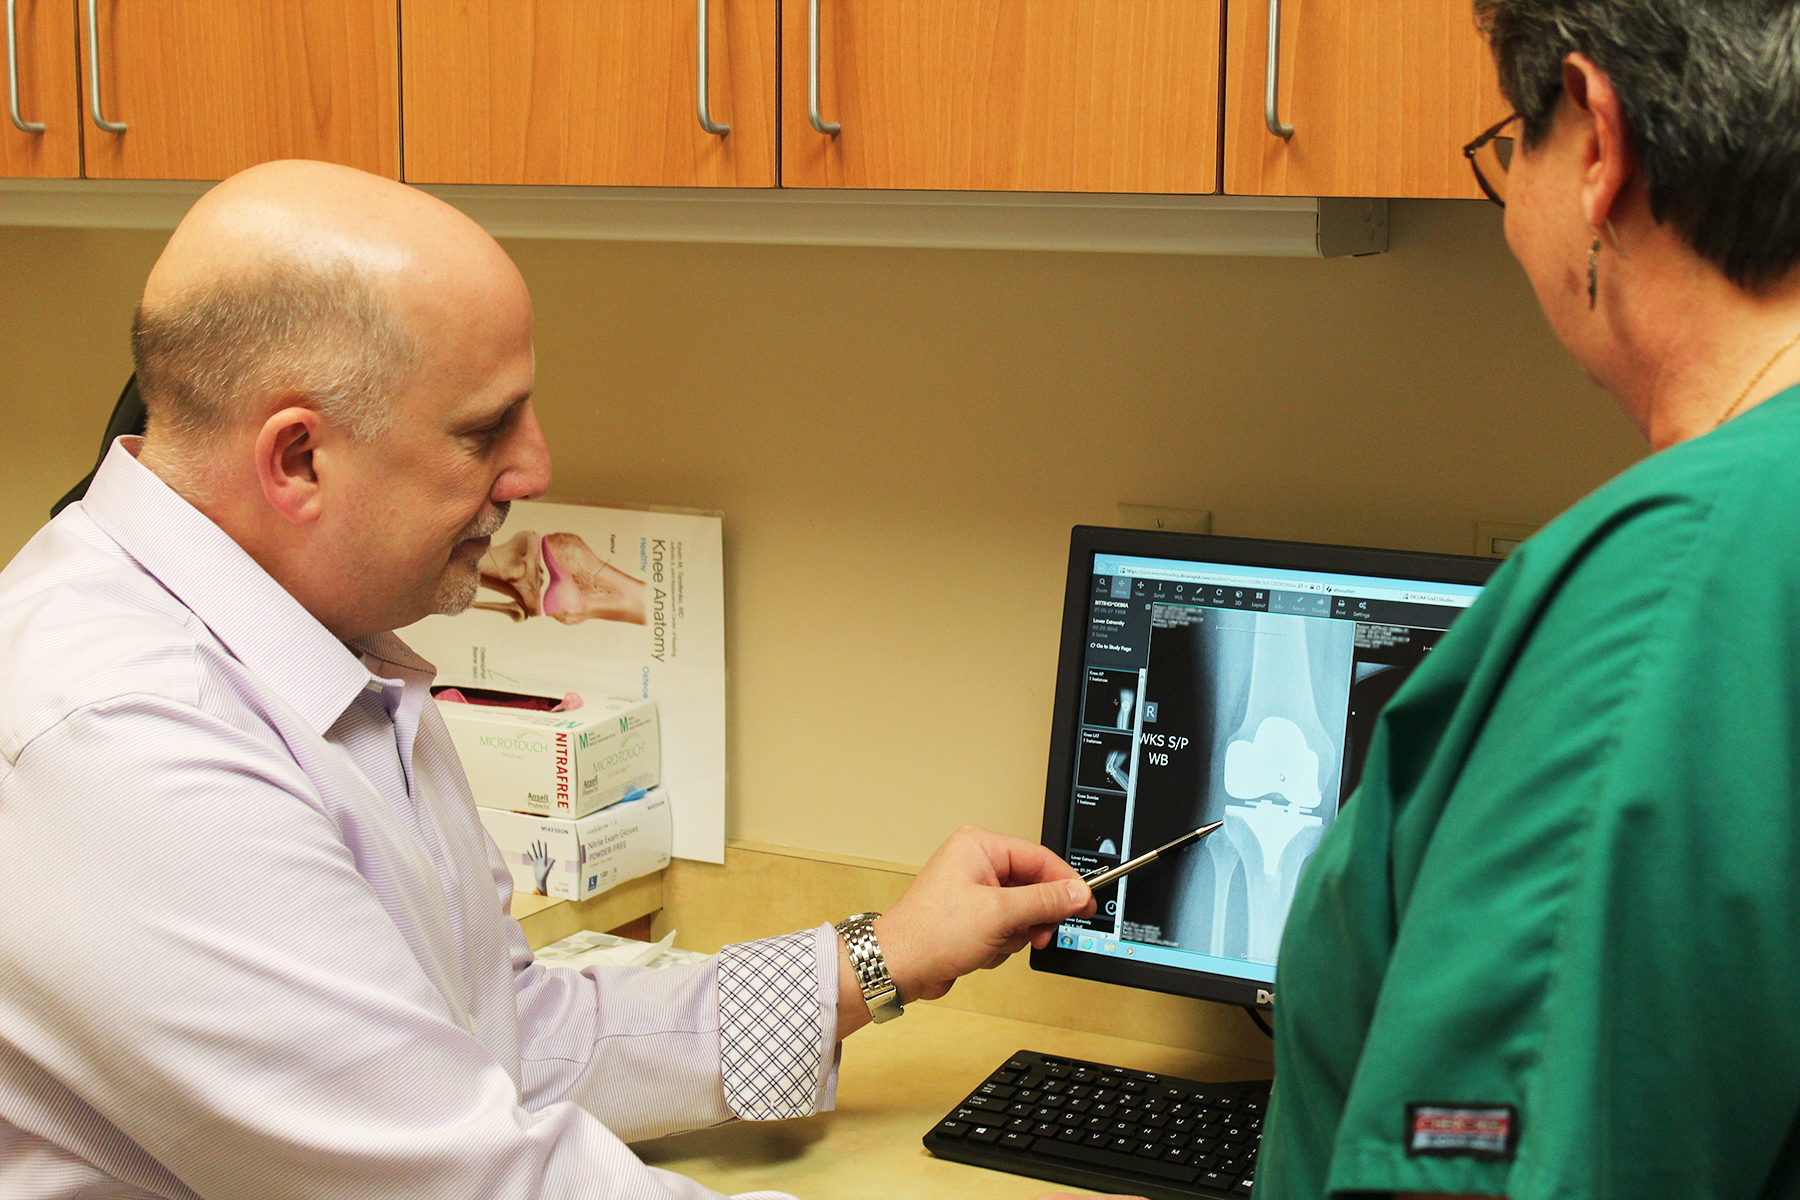 Dr Kevin Terefenko viewing a total knee replacement x-ray